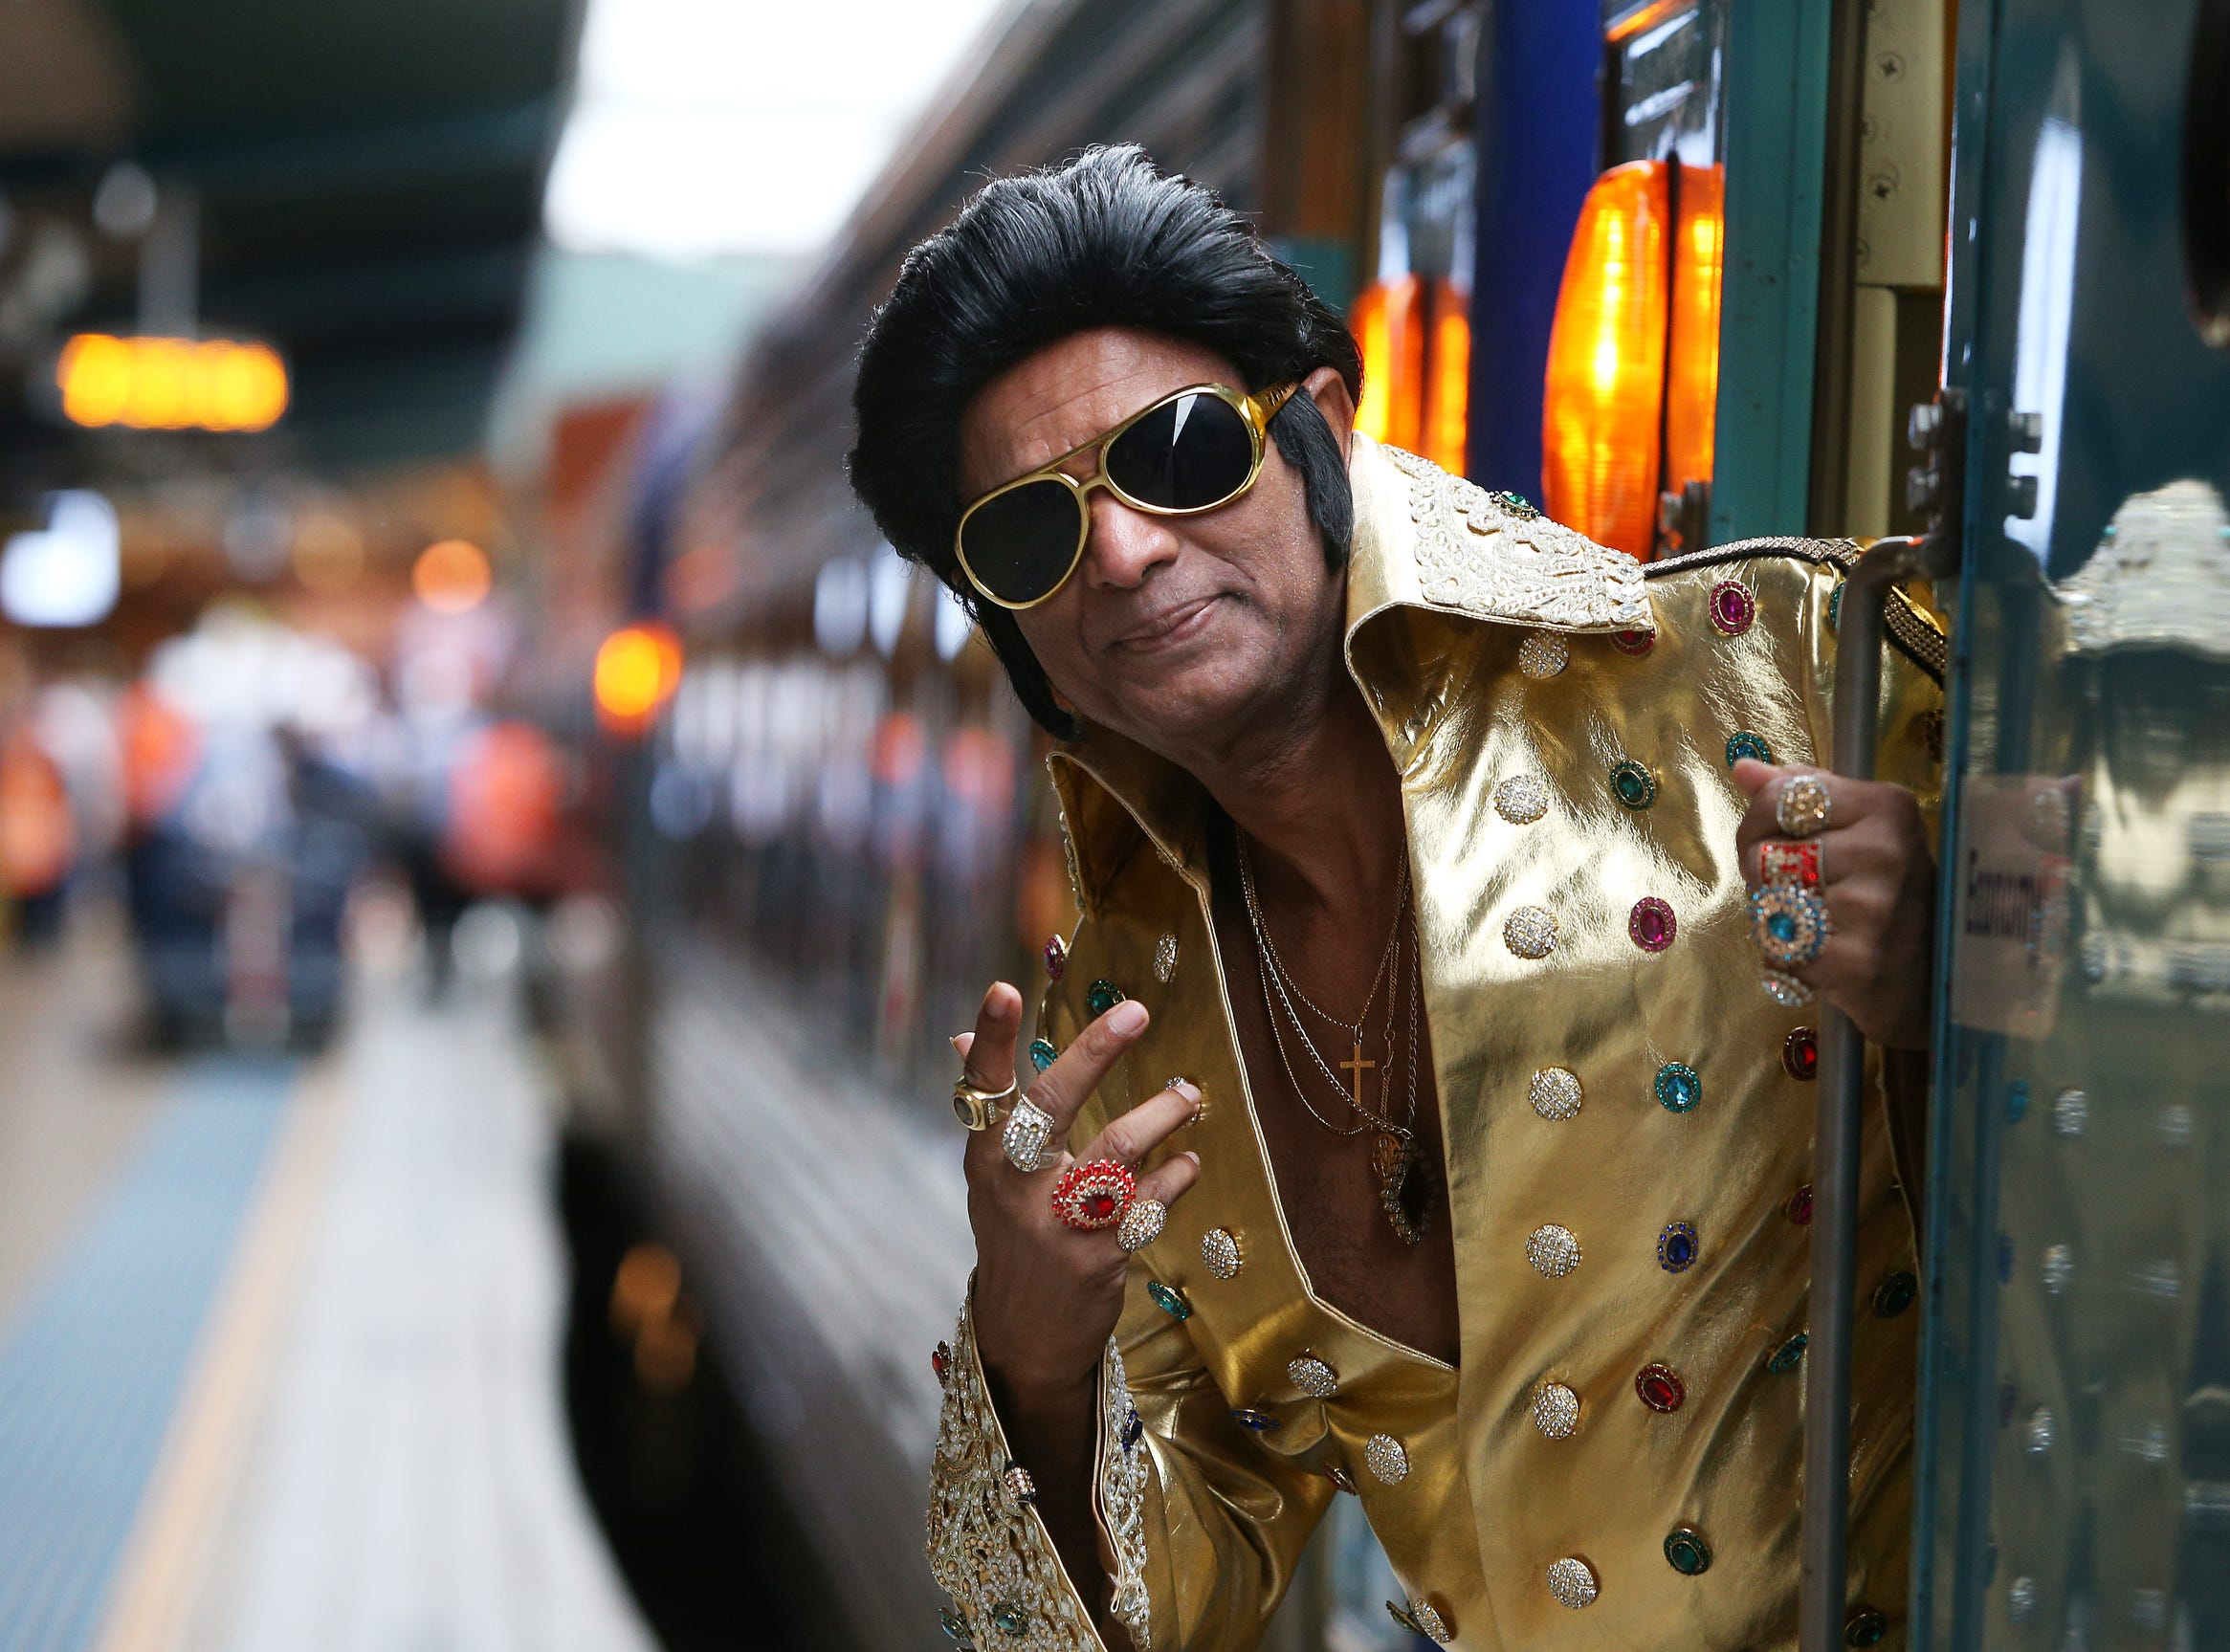 Elvis tribute artist Alfred Kaz, also known as 'Bollywood Elvis' poses at Central Station ahead of boarding the 'Elvis Express' in Sydney, Australia.